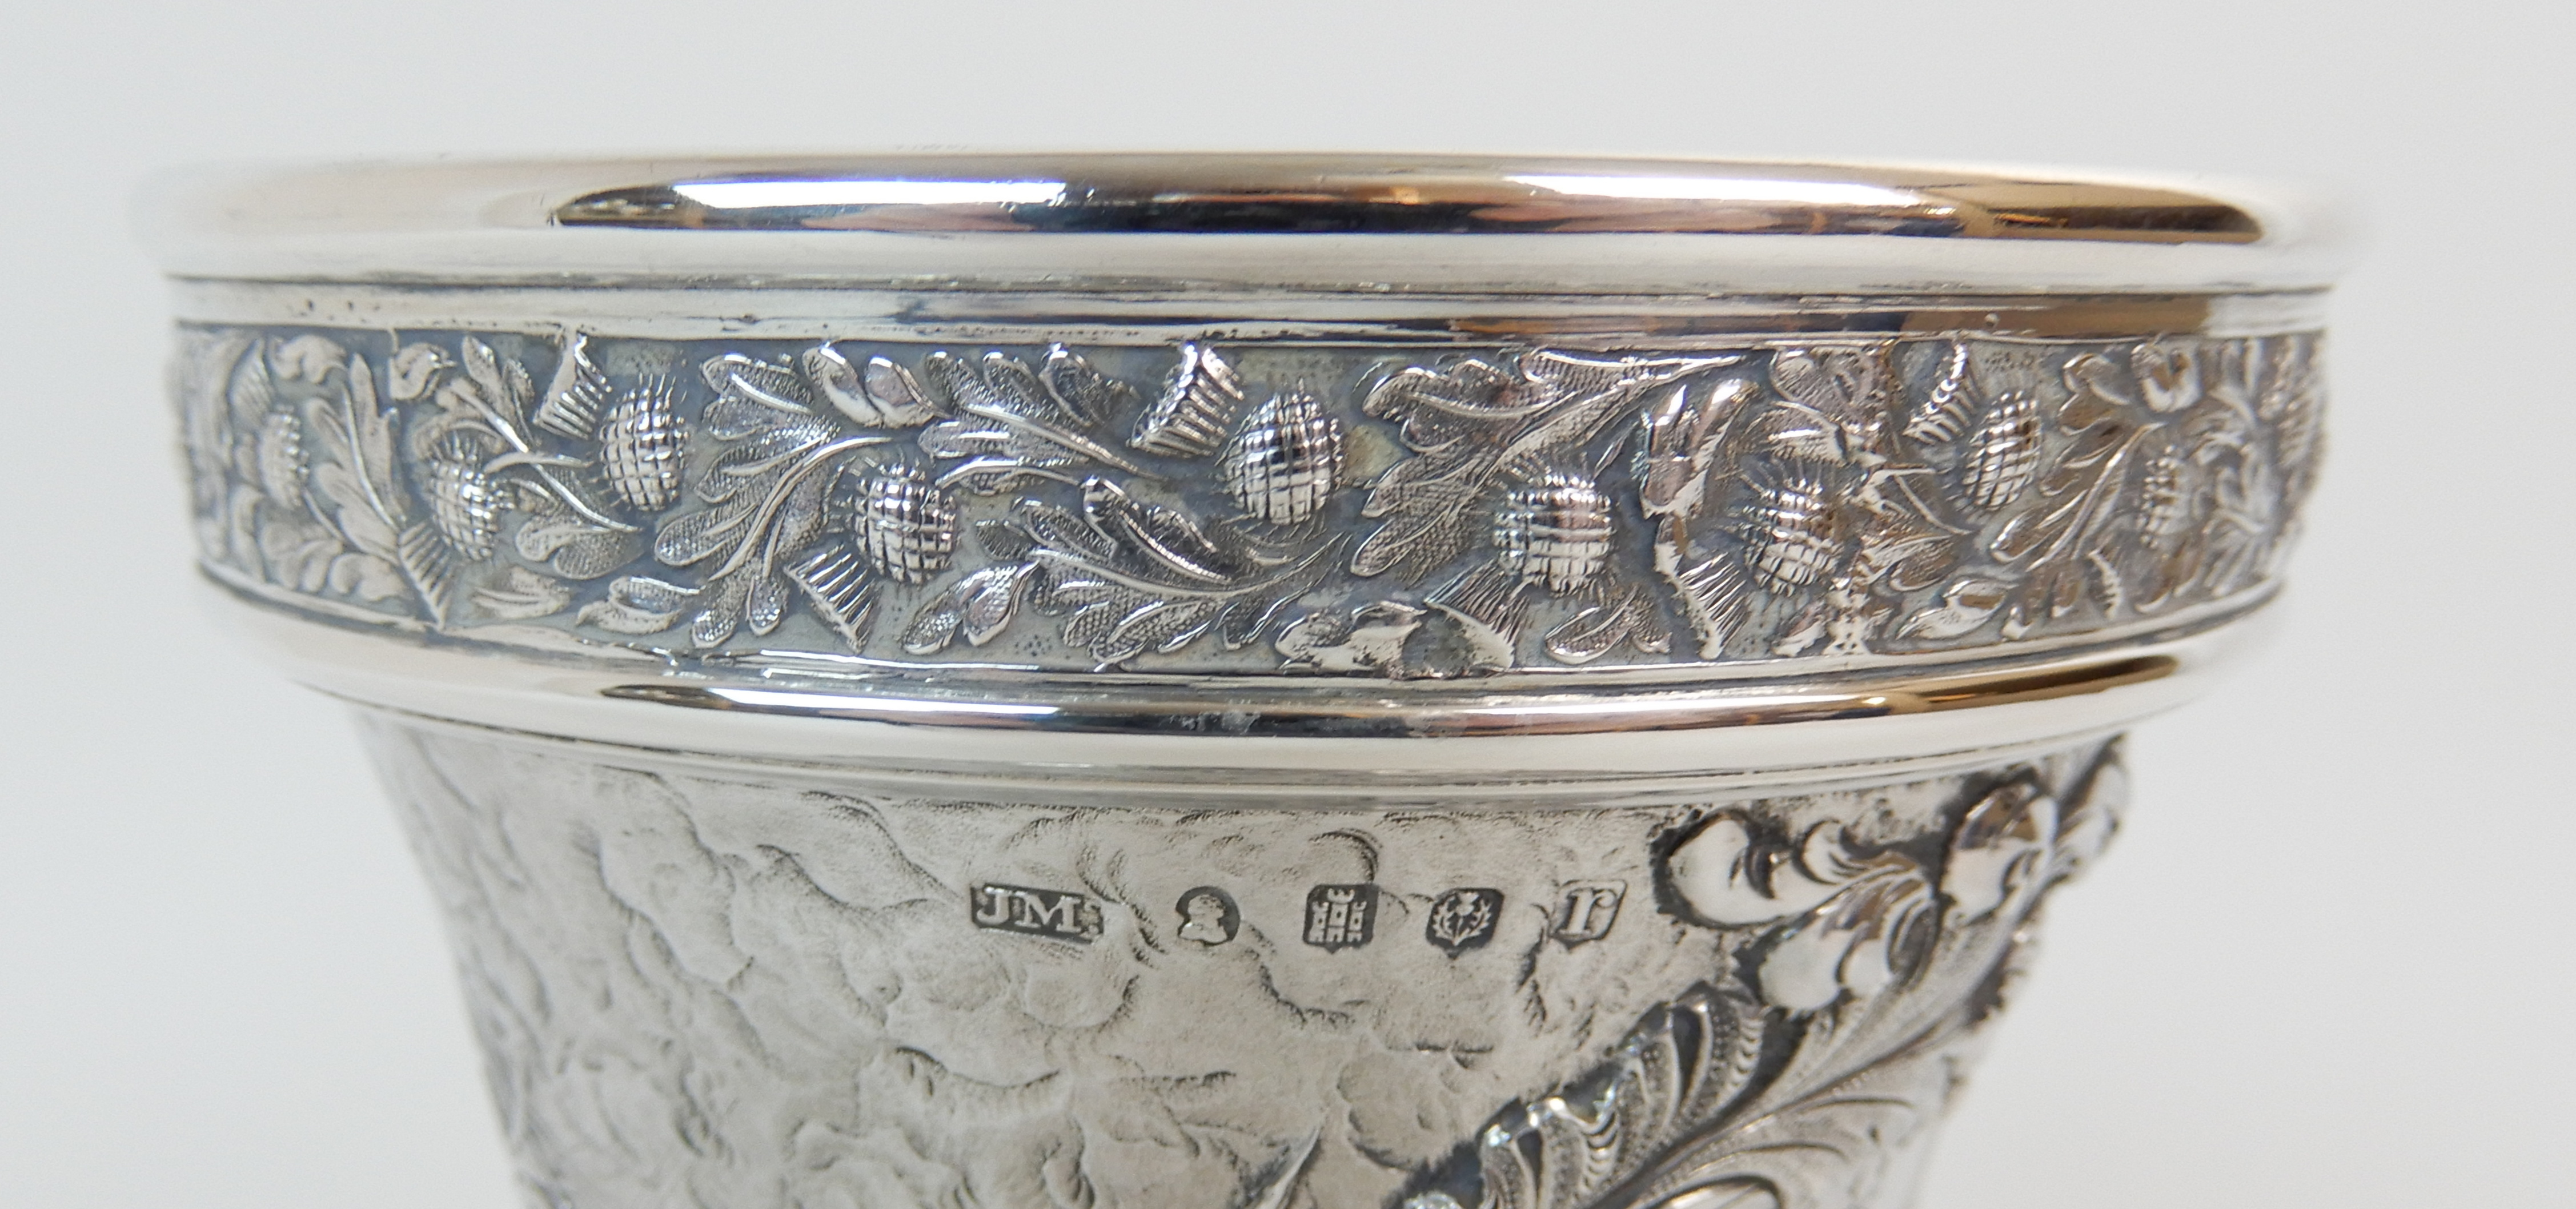 Lot 141 - A GEORGE IV SILVER GOBLET probably by Jonathan Millidge, Edinburgh 1823 of campagna shape, the rim